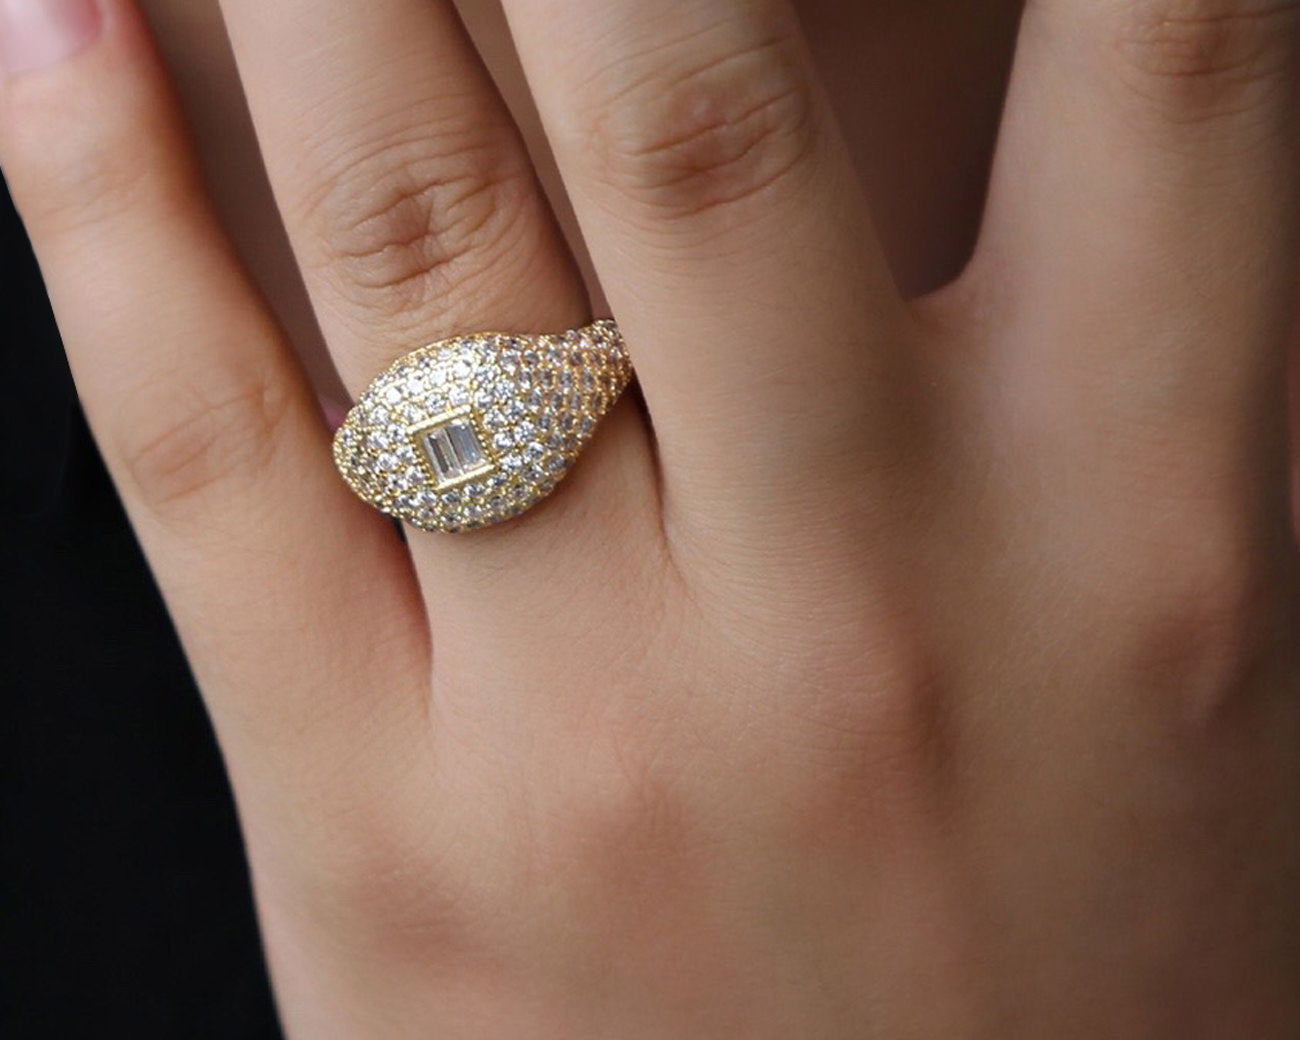 FAX Jewelry | 'Forever Thing' Micro Pave Ring | 18K Gold Plated with White Stones | On Model